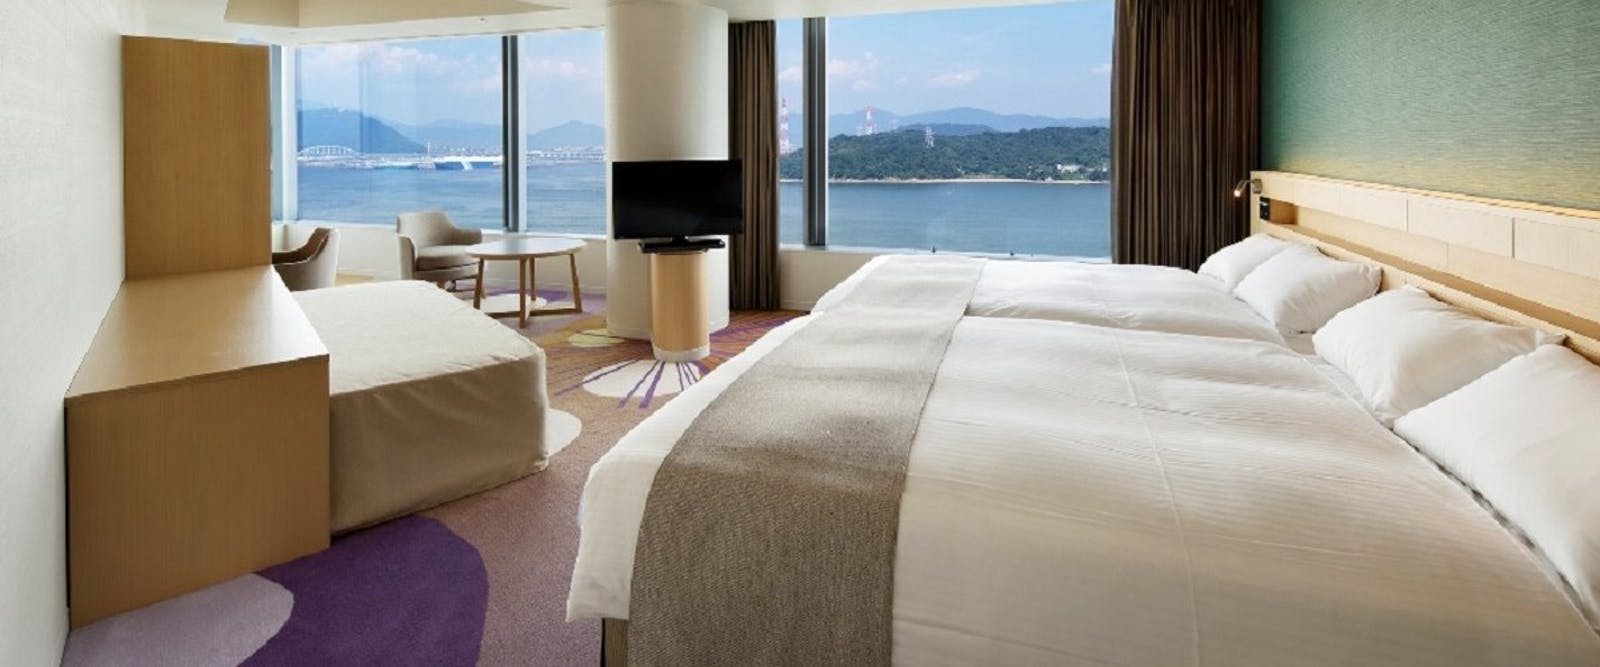 Luxury Room at Grand Prince Hotel Hiroshima, Japan